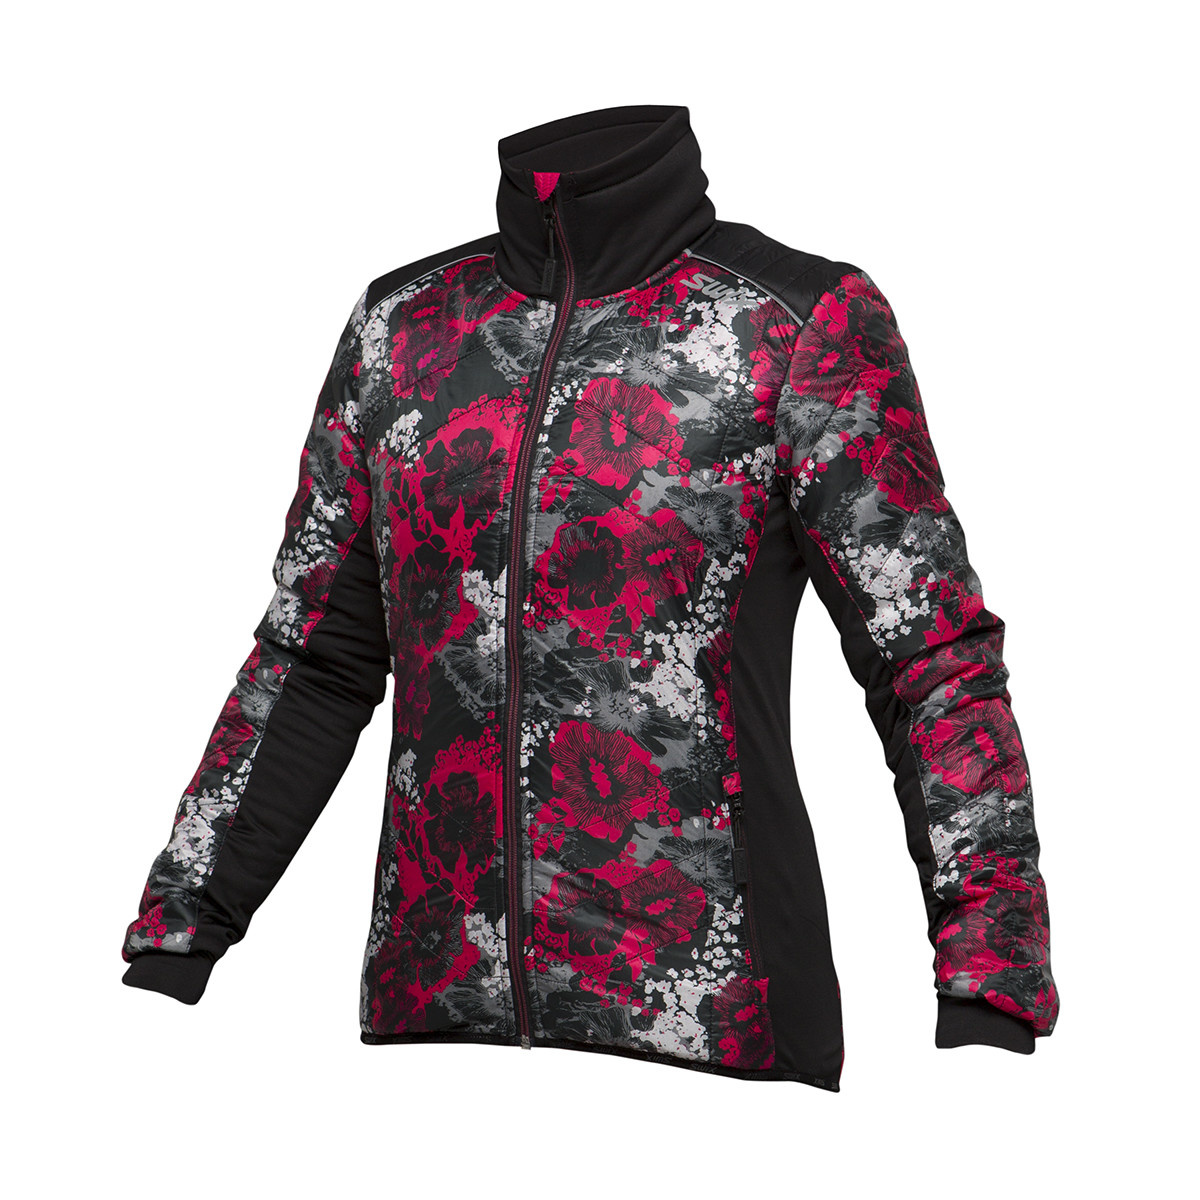 Swix Swix Menali Quilted Jacket Women's, Large, Pink Floral